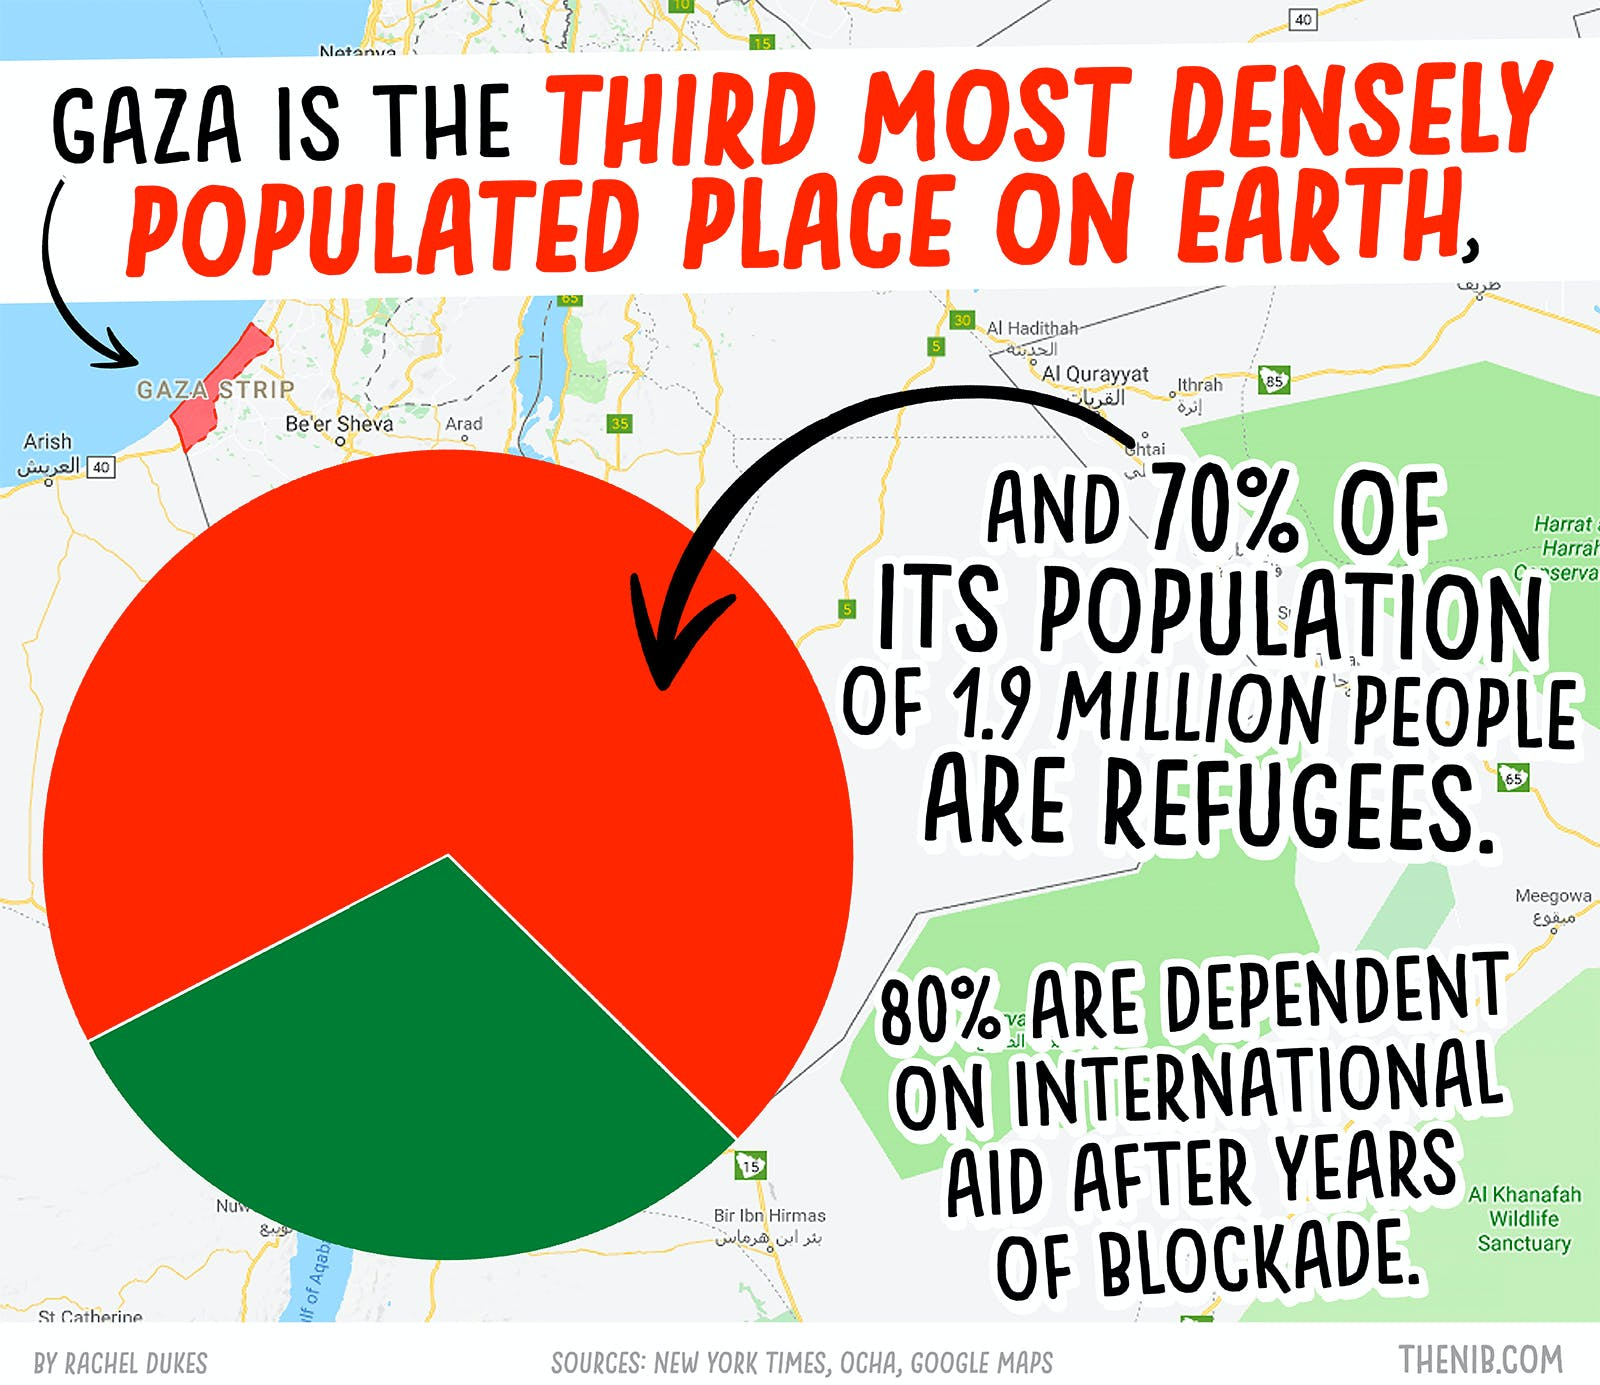 50 Years of Conflict in The Gaza Strip - by Stats